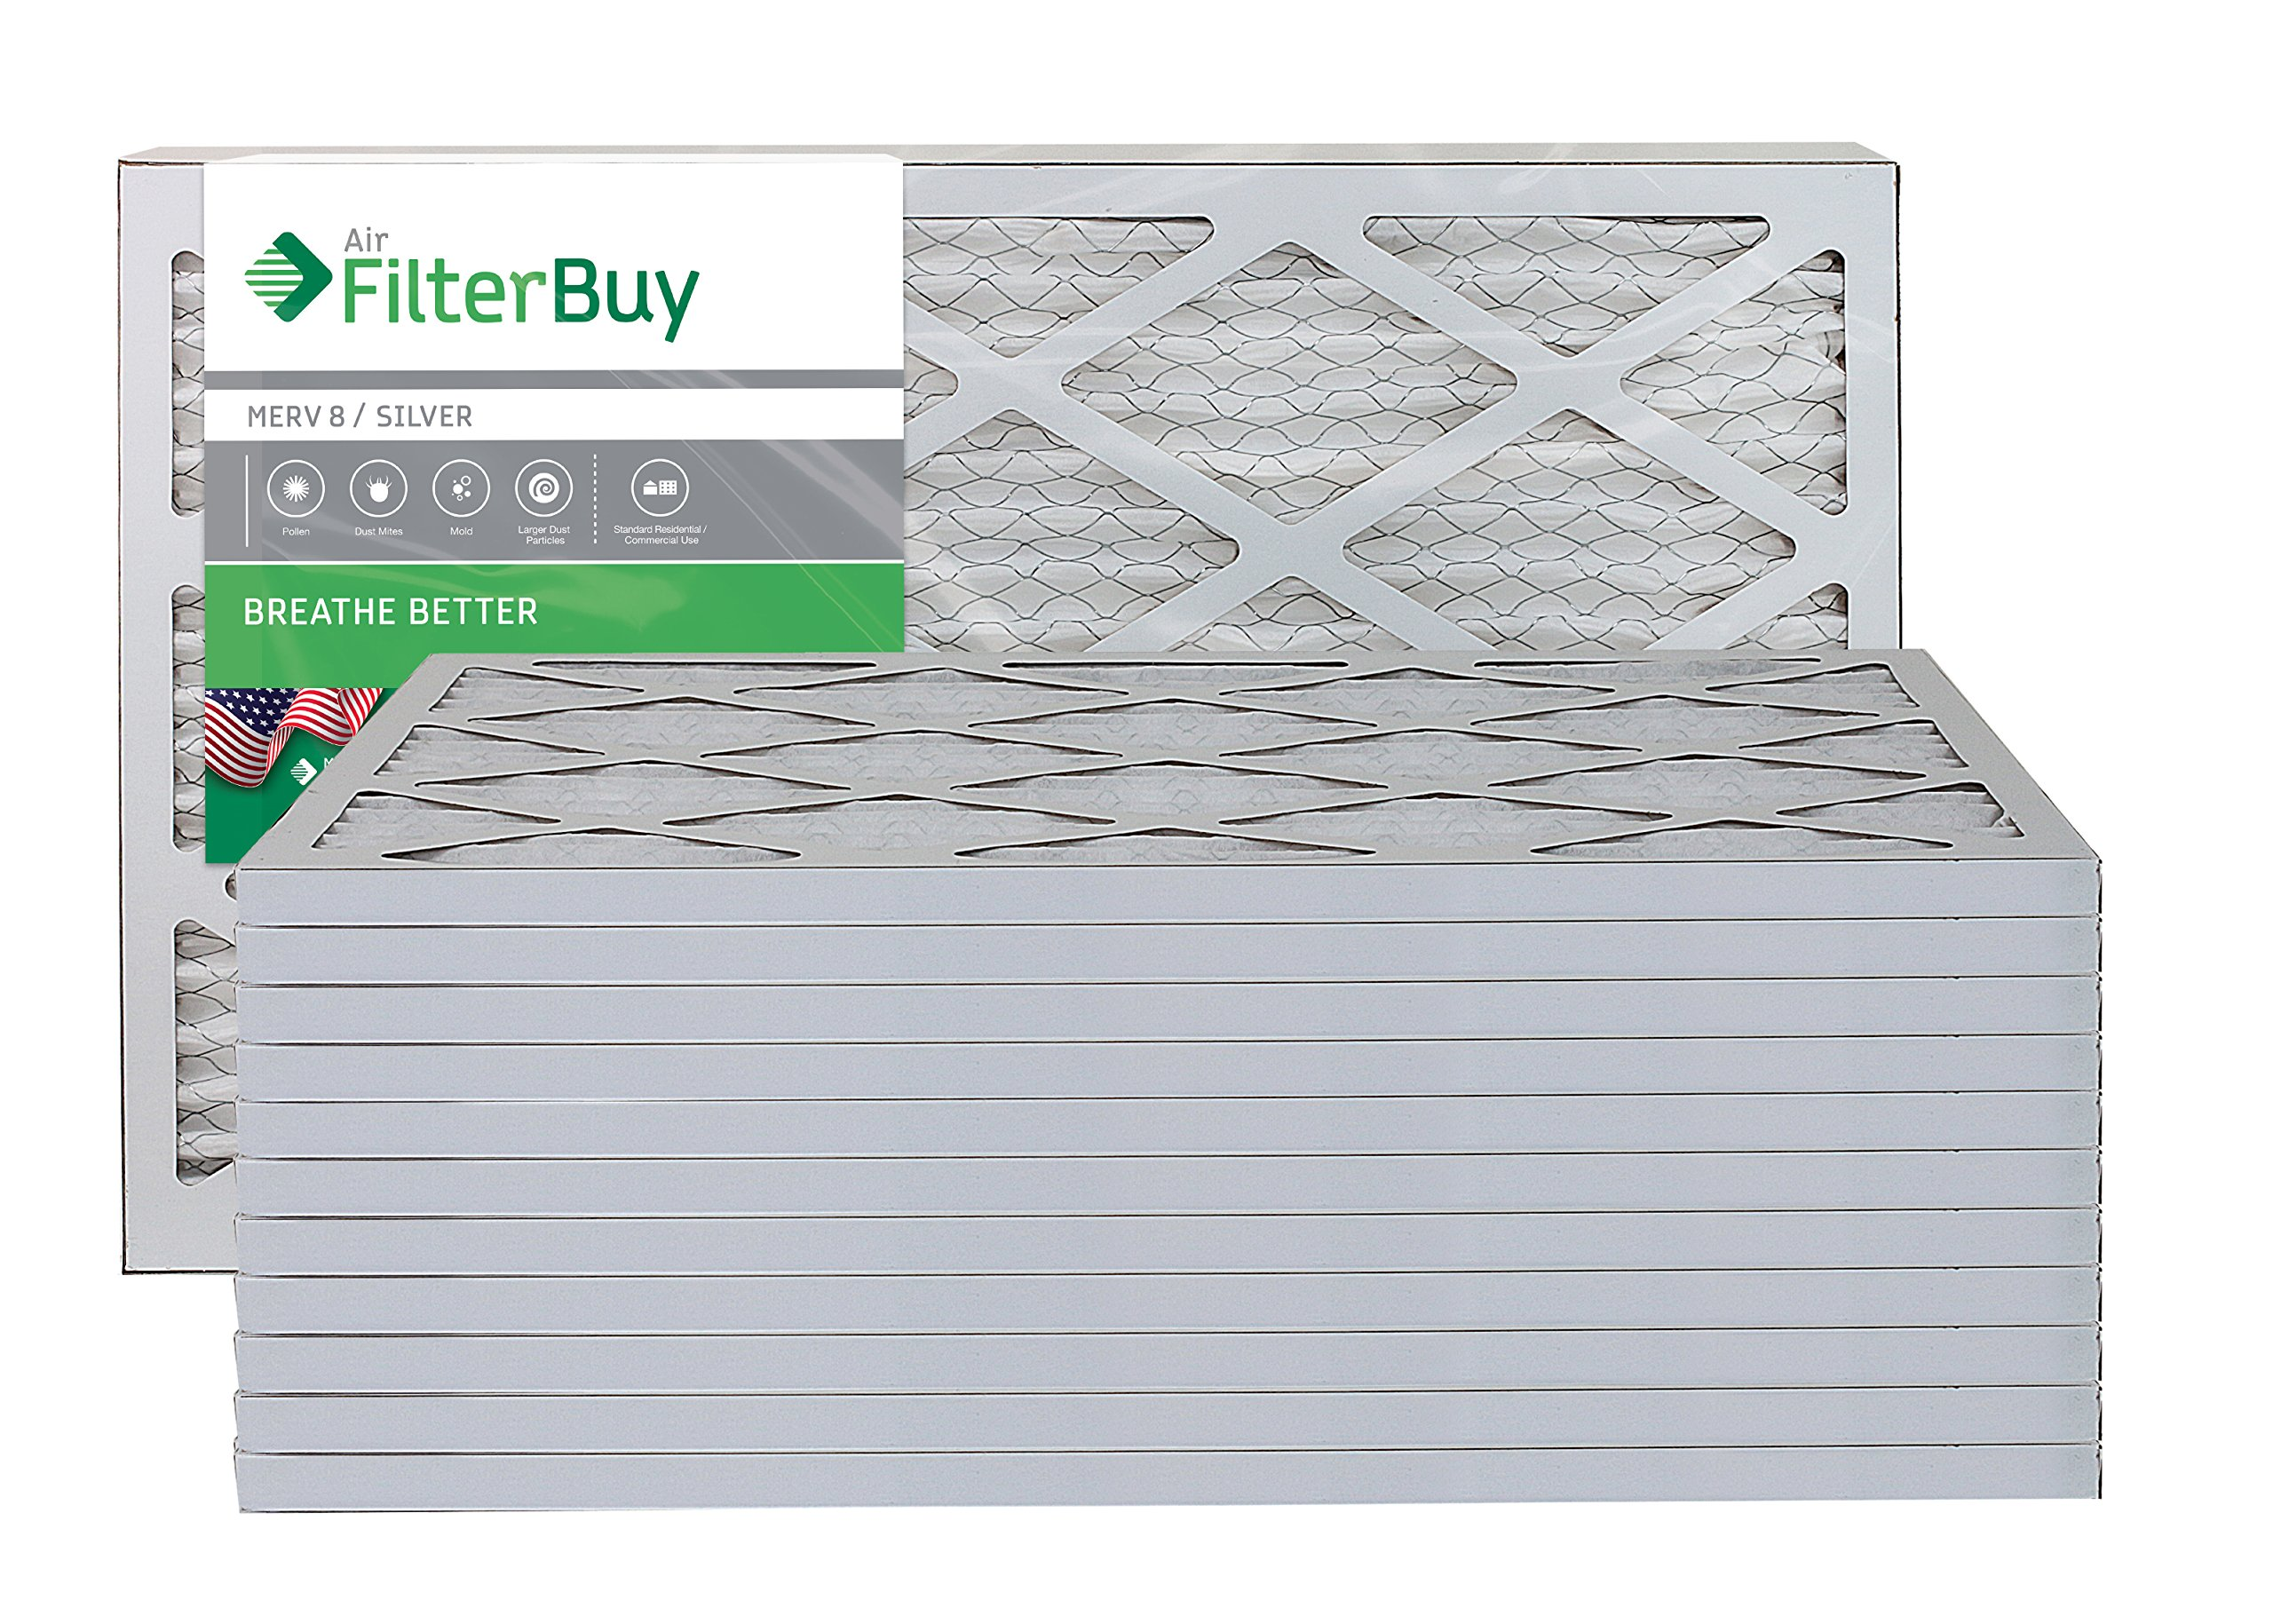 AFB Silver MERV 8 12x25x1 Pleated AC Furnace Air Filter. Pack of 12 Filters. 100% produced in the USA. by FilterBuy